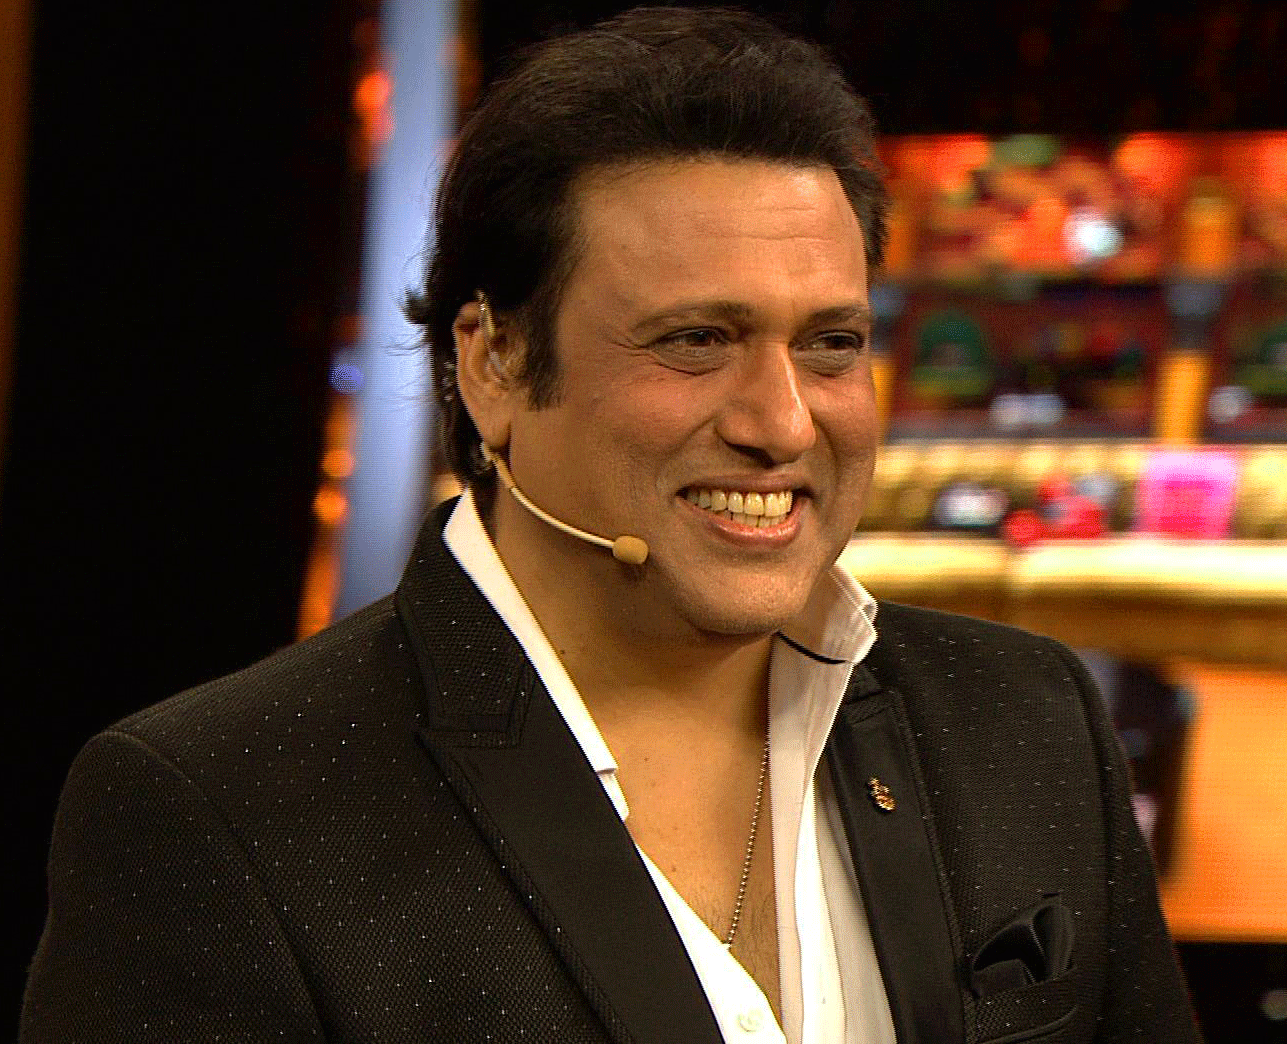 GOVINDA IMAGES PICS PICTURES FREE HD DOWNLOAD